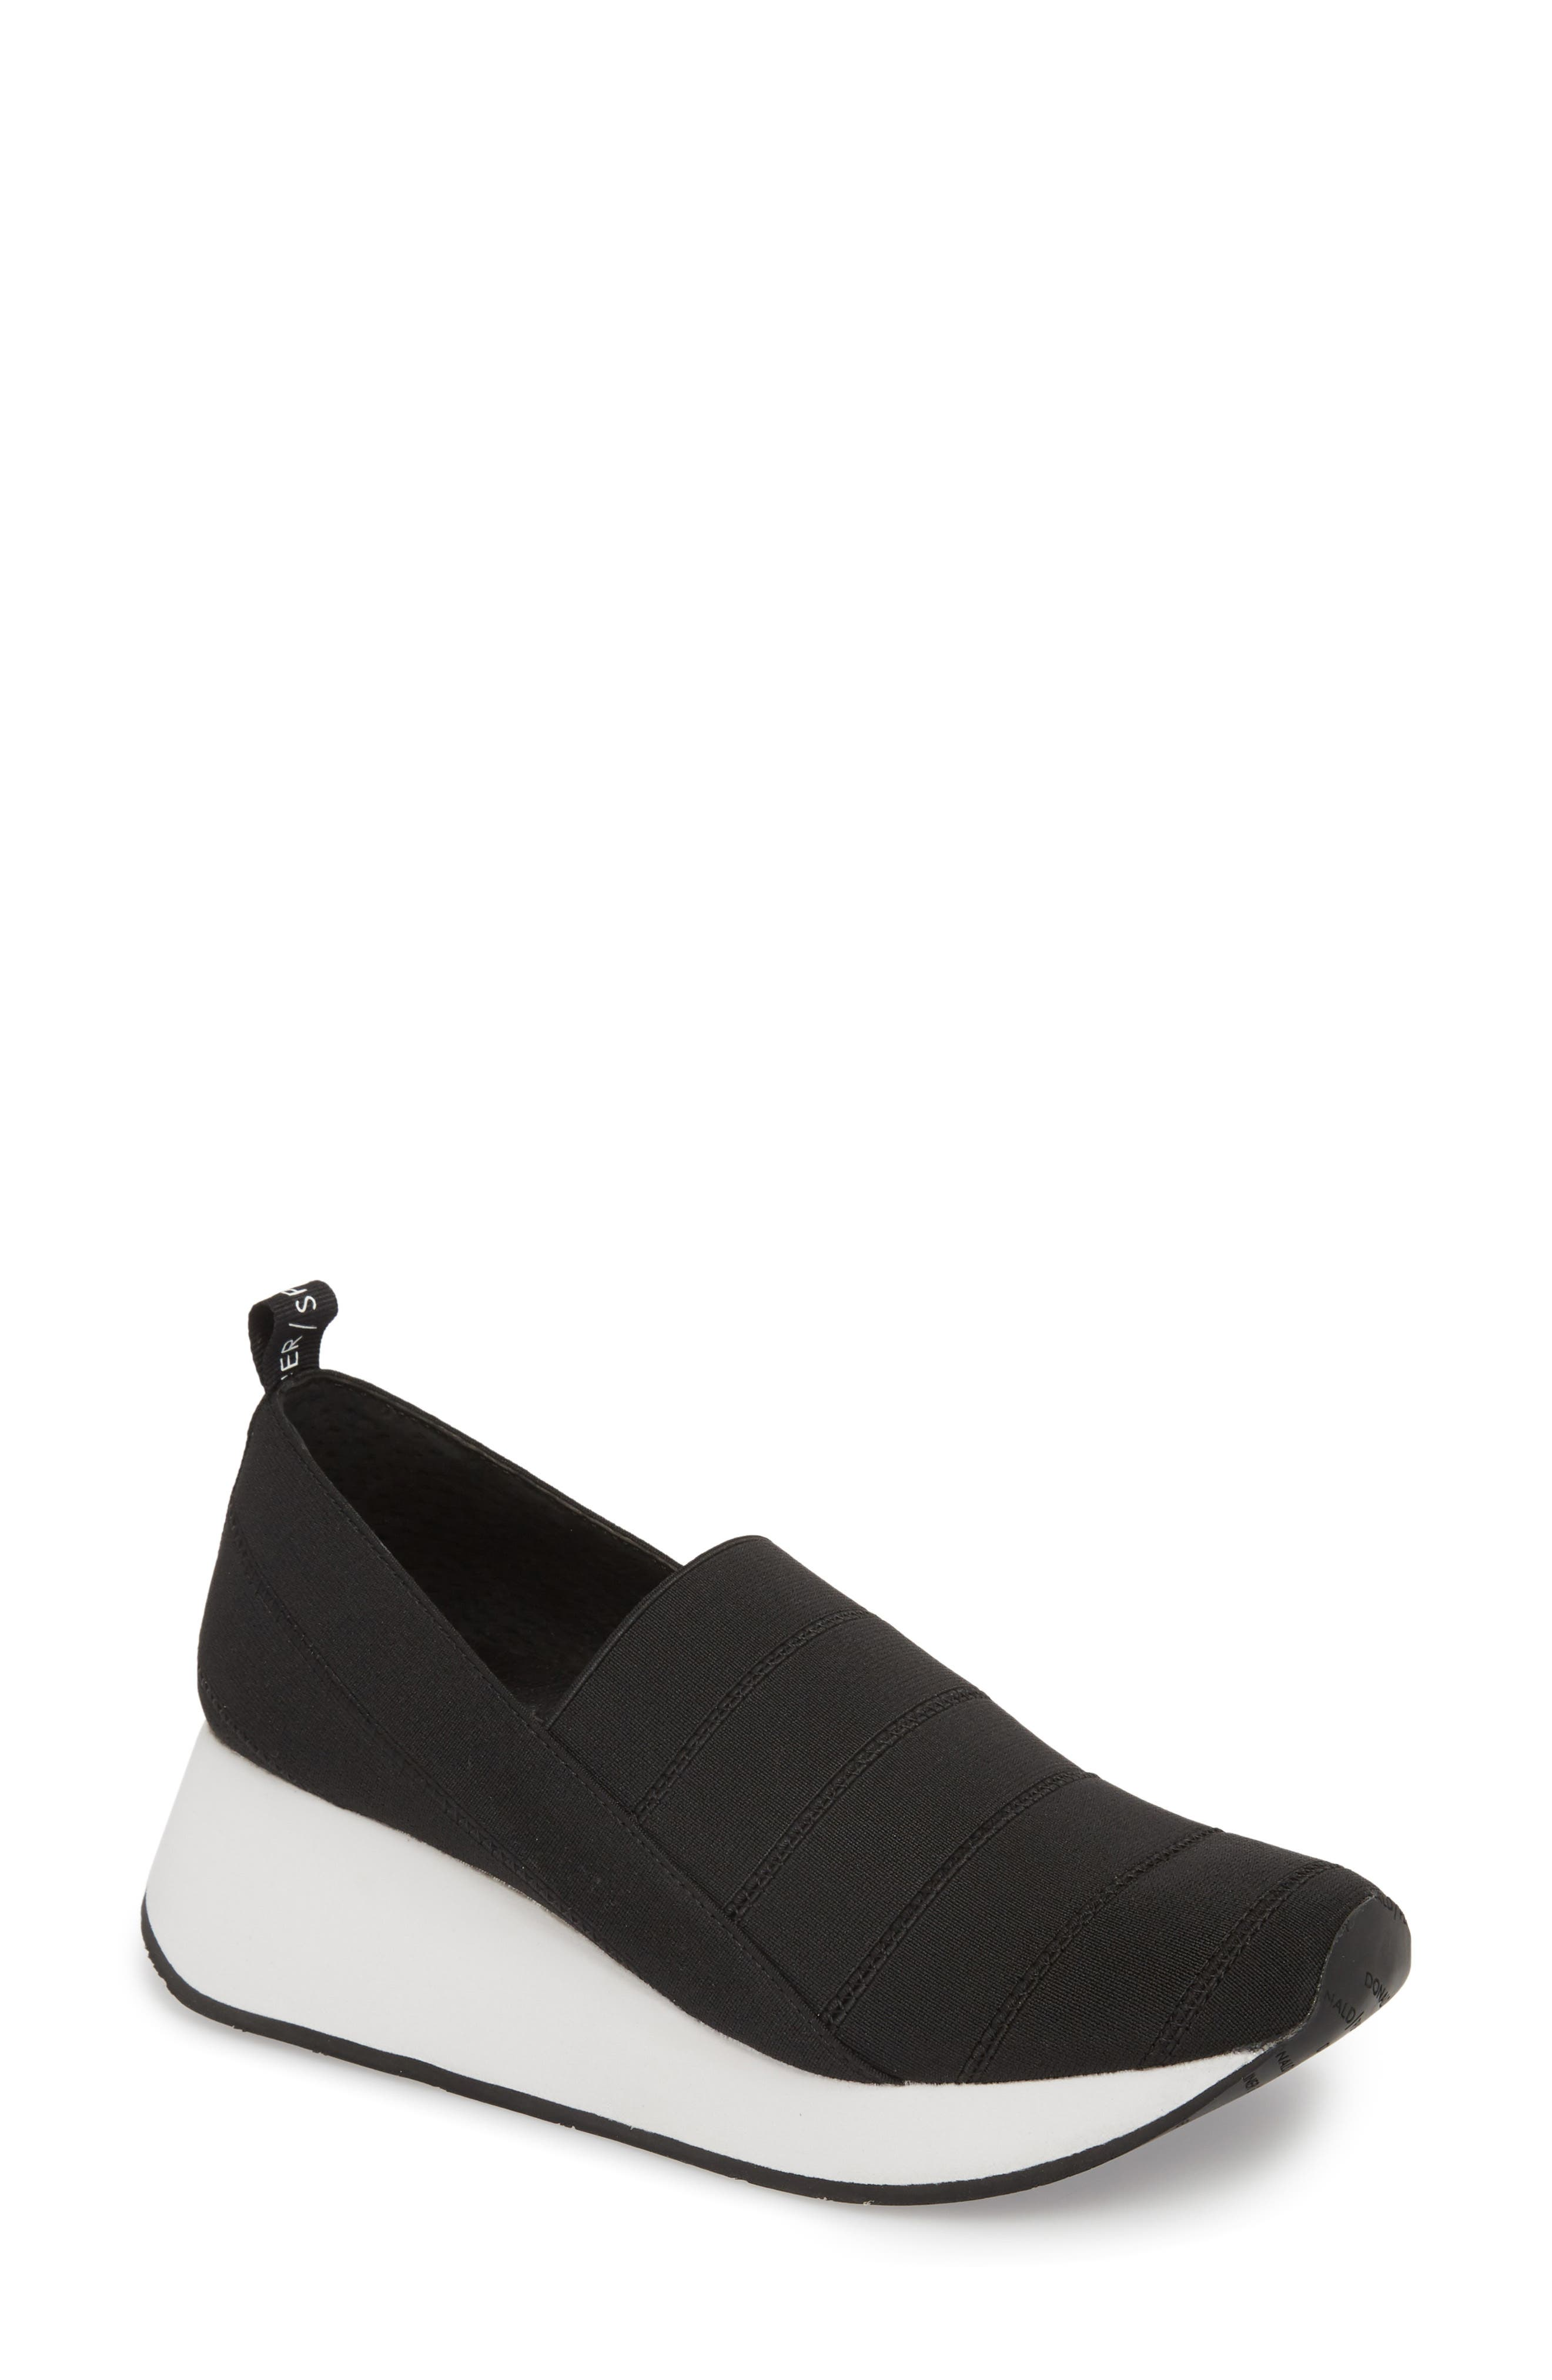 DONALD J PLINER Piper Basic Stretch Slip-On Sneakers in Black Stretch Fabric